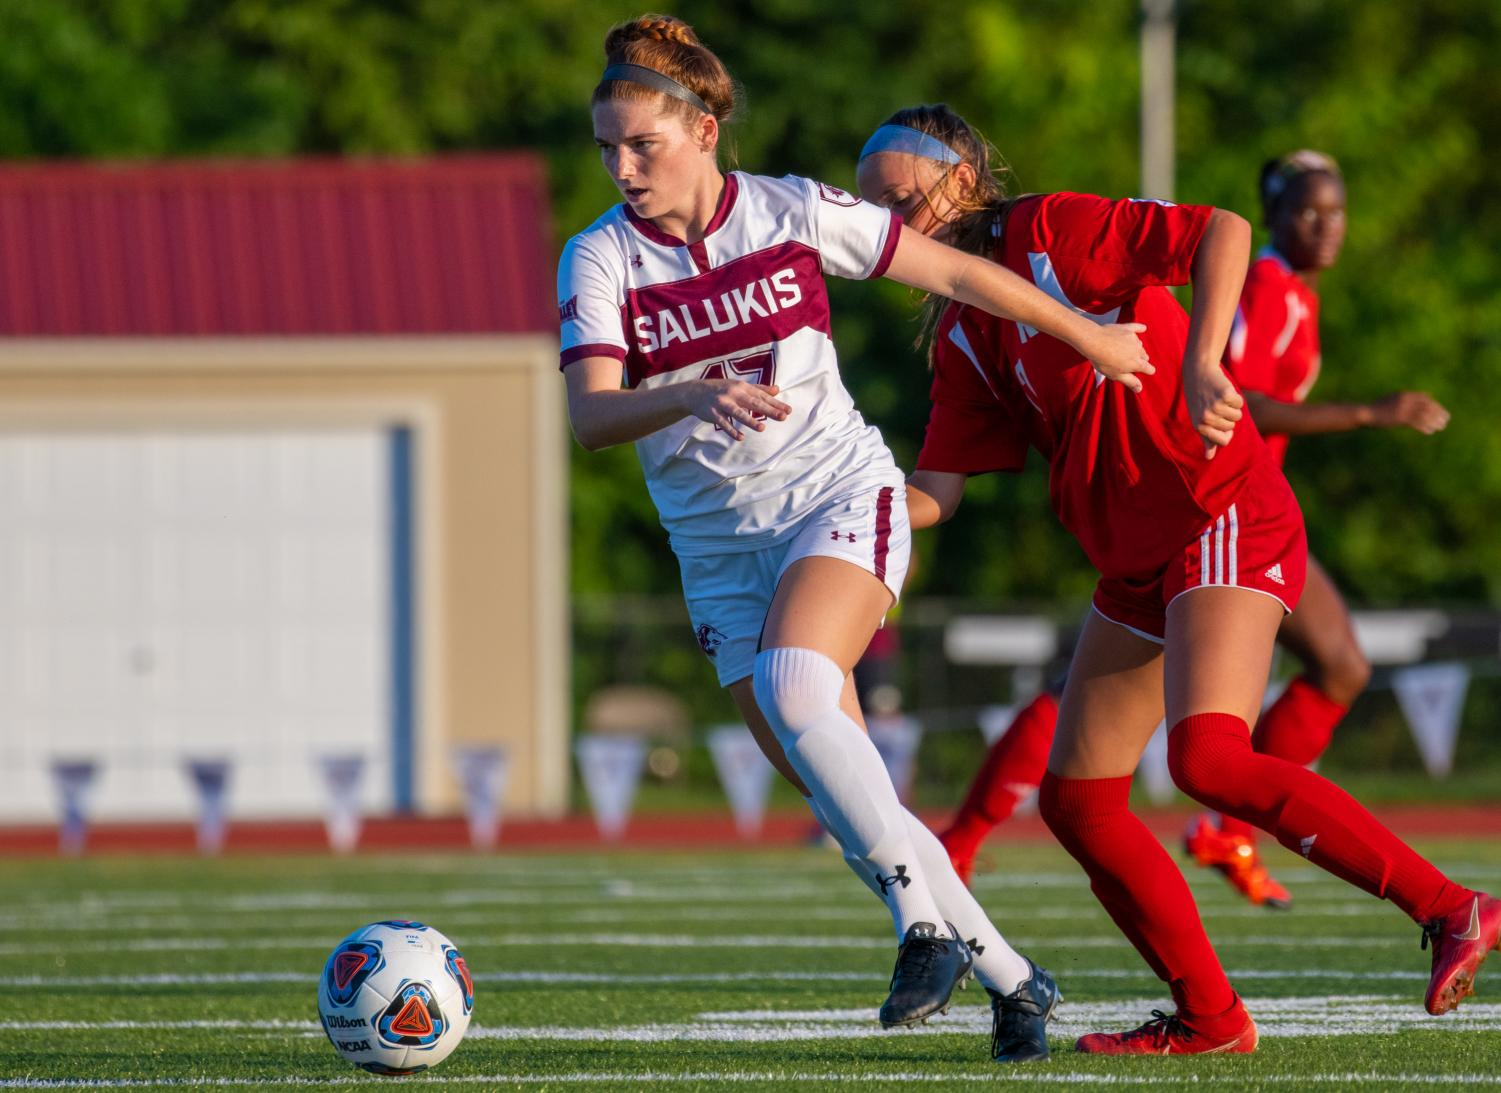 Saluki+freshman+Kathryn+Creedon+moves+the+ball+forward+on+Tuesday%2C+Aug.+27%2C+2019+during+the+Salukis%27+1-0+win+against+the+Rose-Hulman+Fightin%27+Engineers+at+the+Lew+Hartzog+Track+%26+Field+Complex.